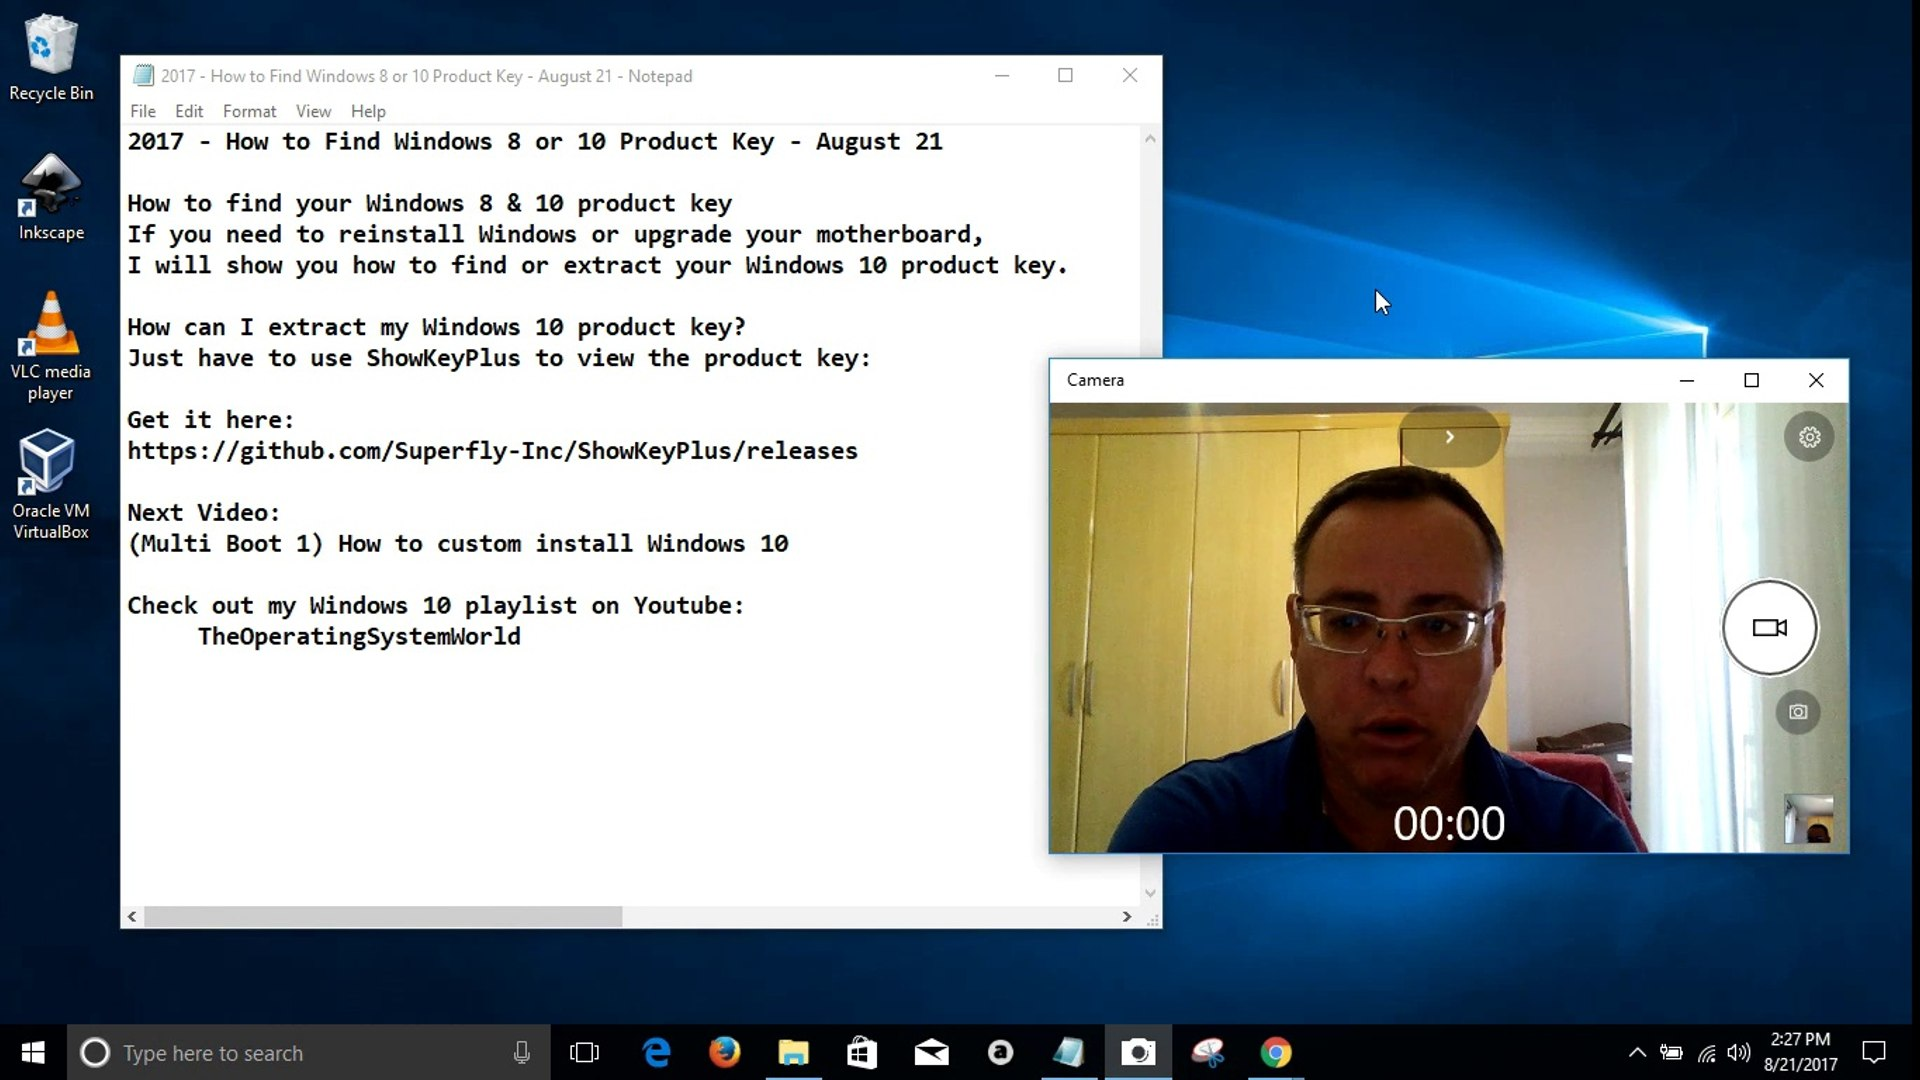 2017 - How to Find Windows 8 or 10 Product Key - August 21